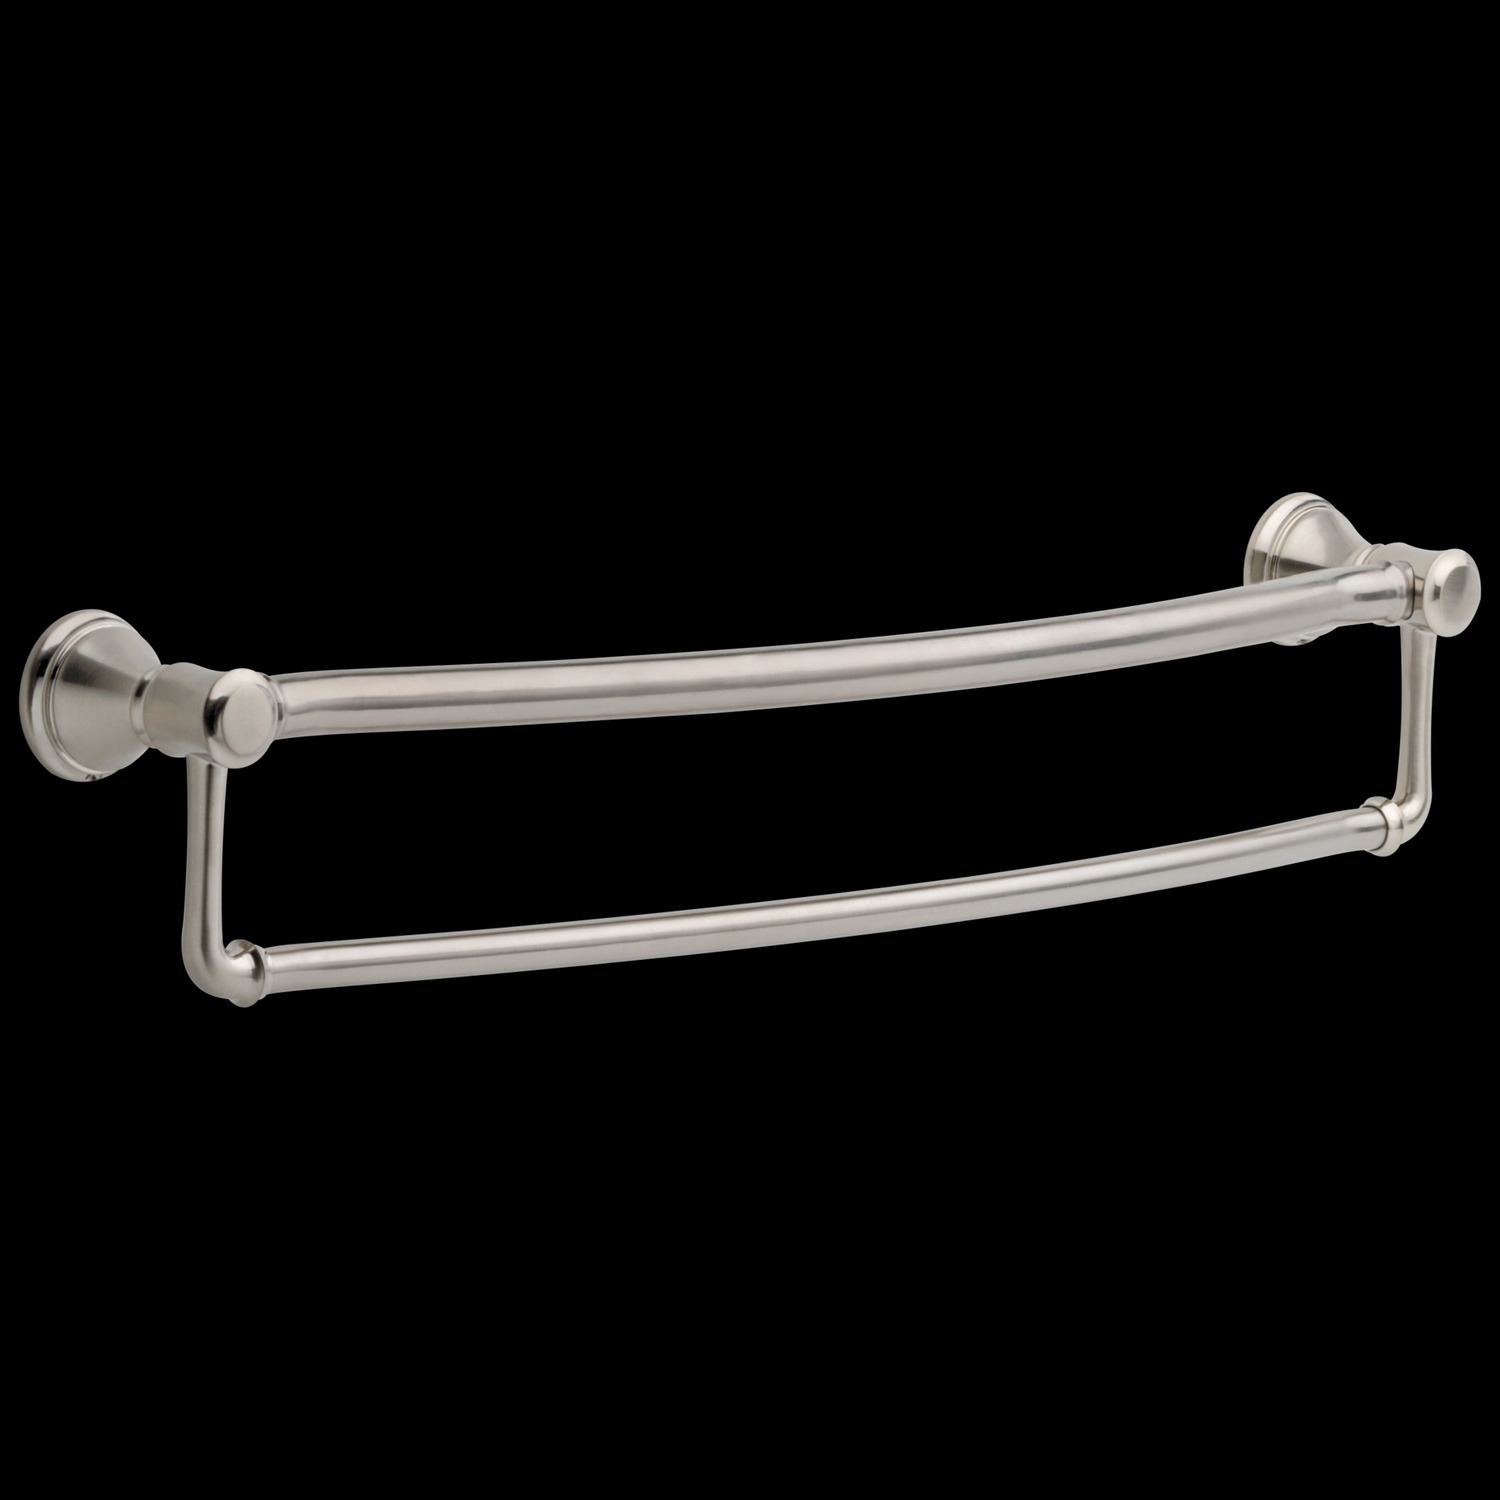 "Stainless Traditional 24"" Towel Bar with Assist Bar"